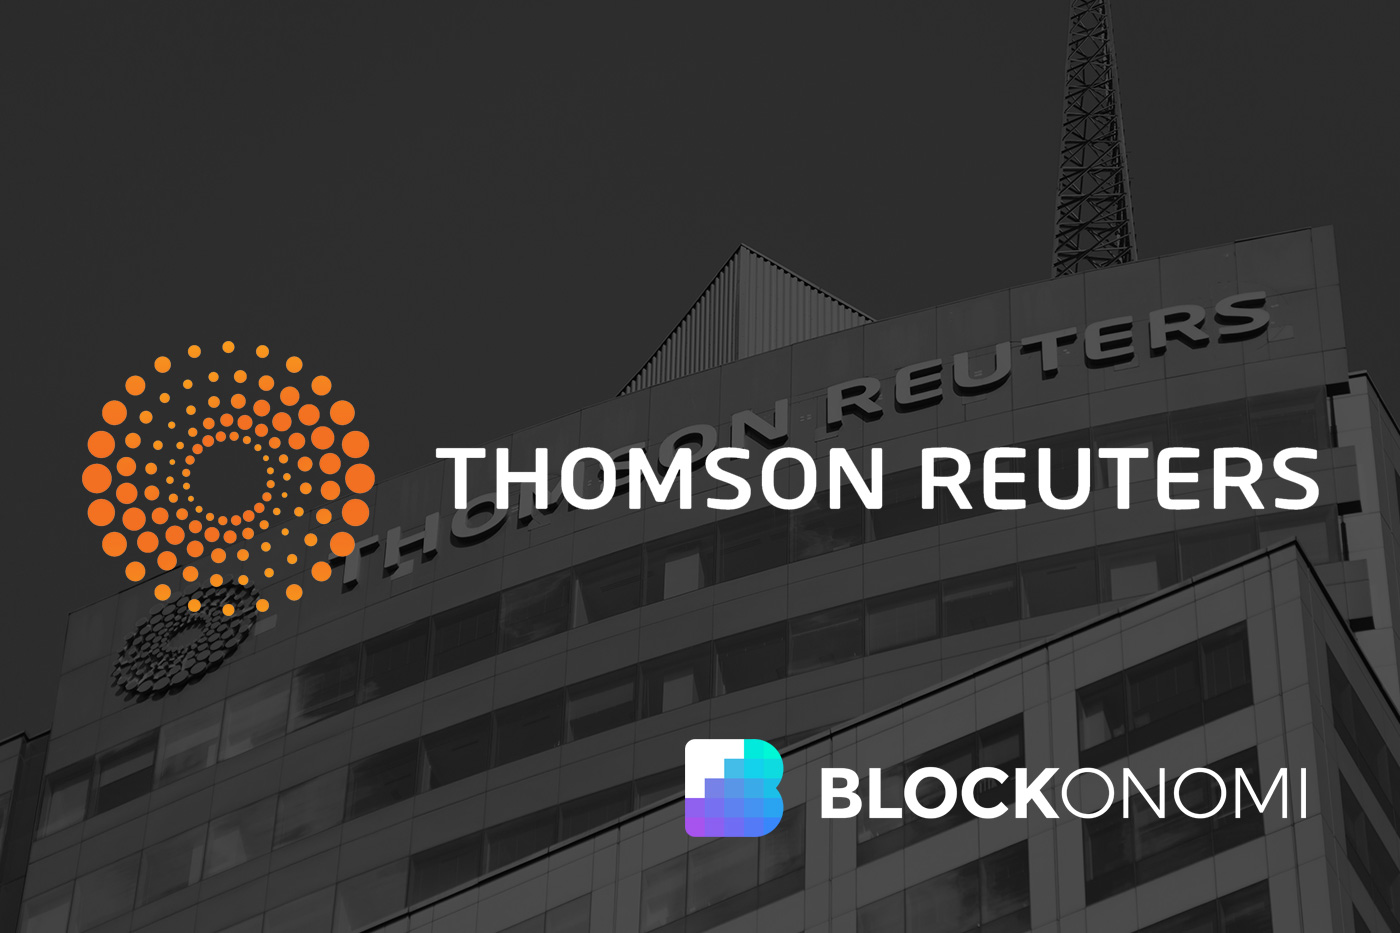 Thomson Reuters: Bringing Ethereum Smart Contracts to the Mainstream